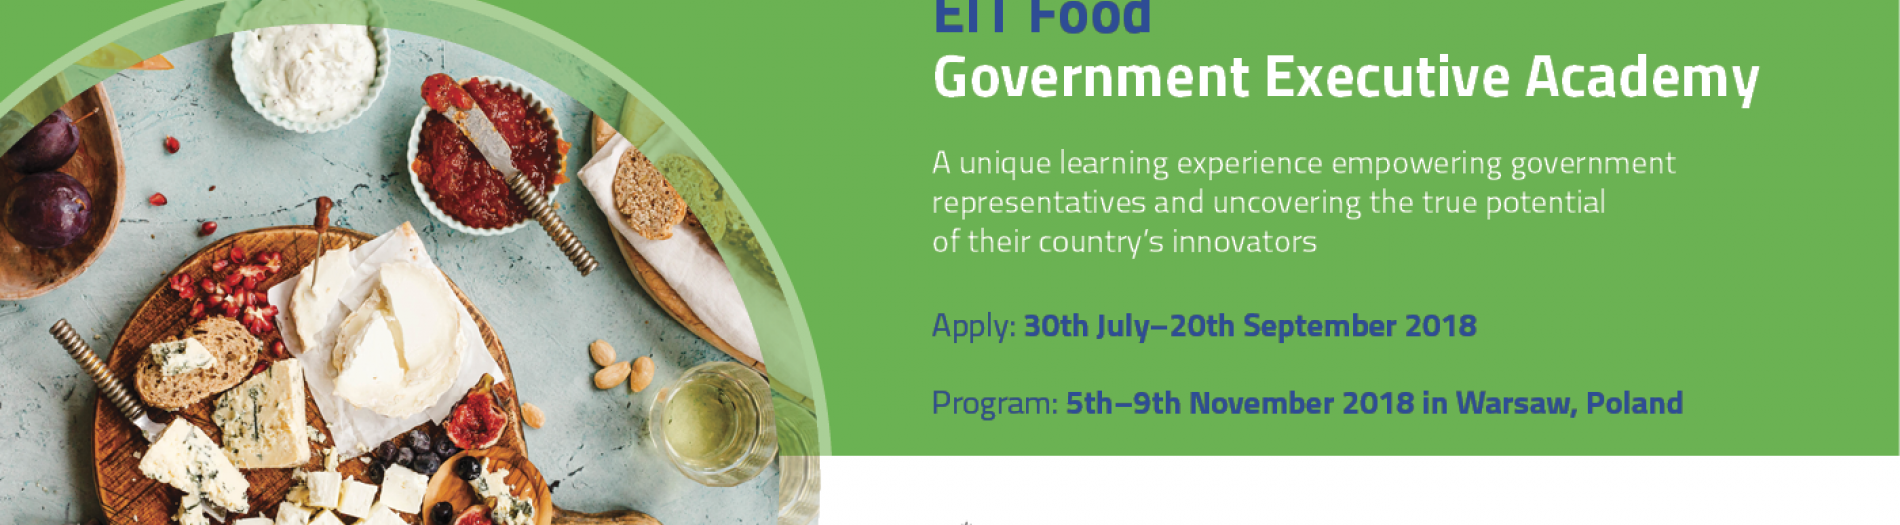 EIT Food Government Executive Academy